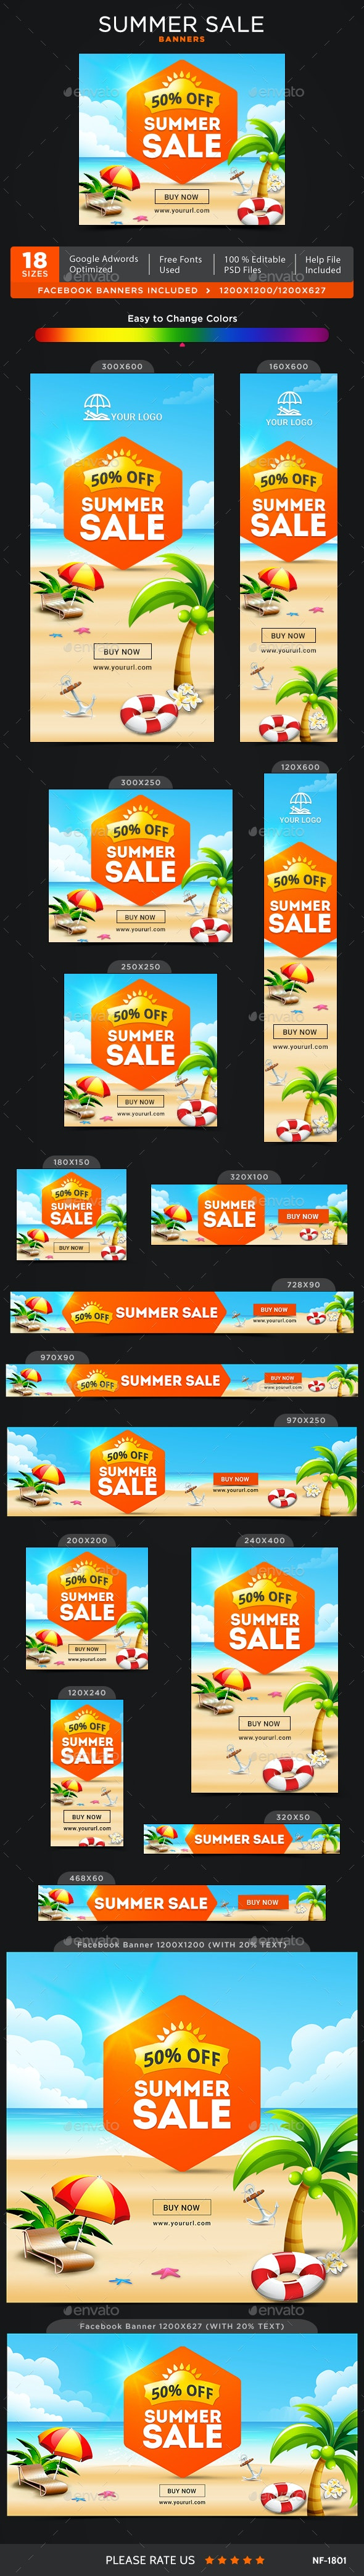 Summer Sale Banners - Image Included - Banners & Ads Web Elements